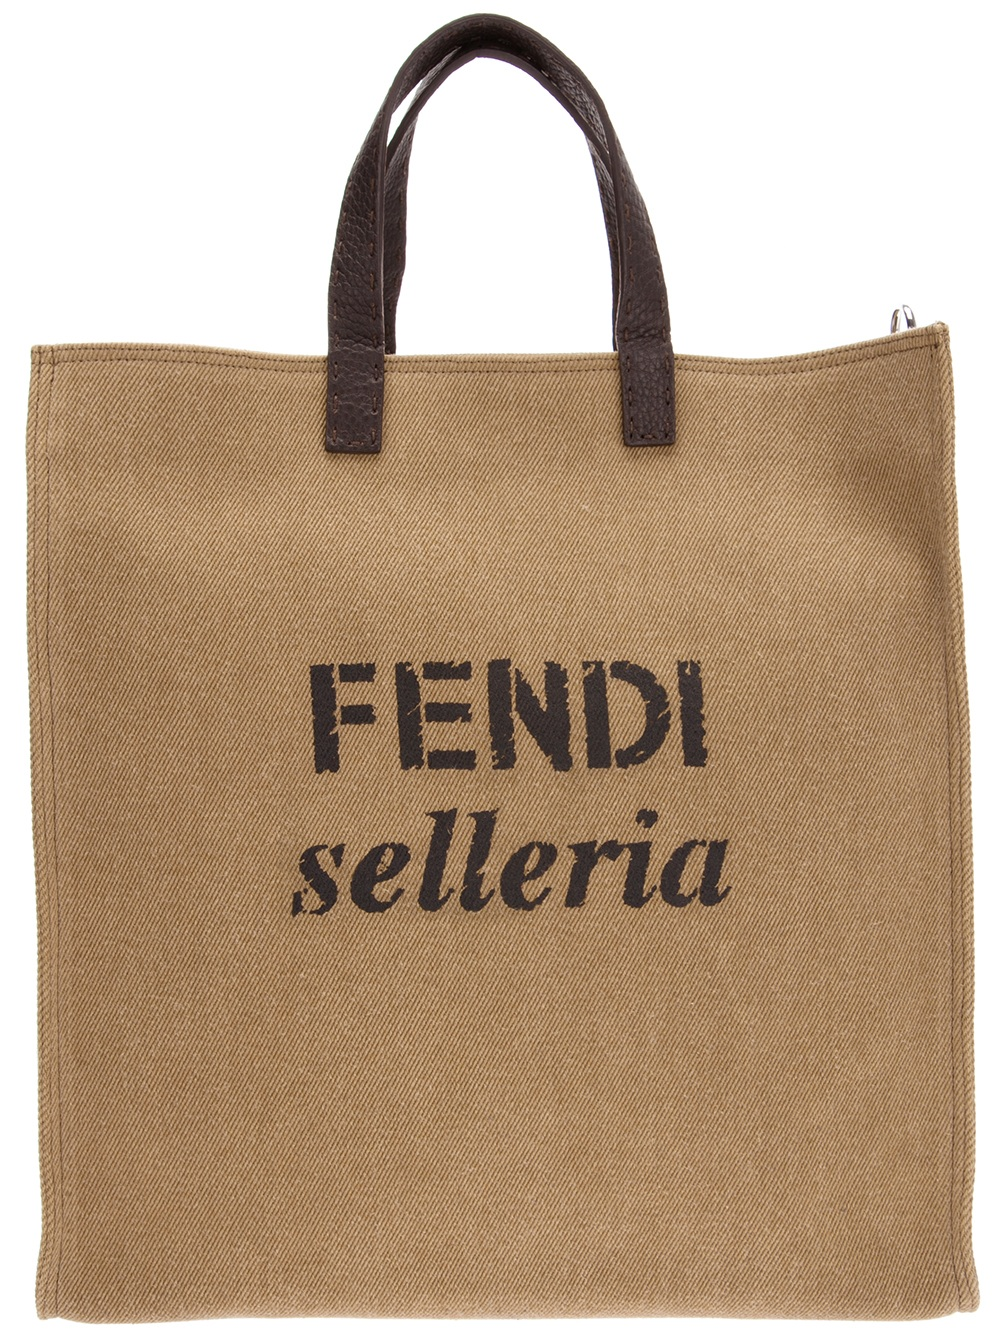 ... reduced fendi selleria shopping tote in brown for men lyst aa0f0 0e868 bcde0ae9034fa